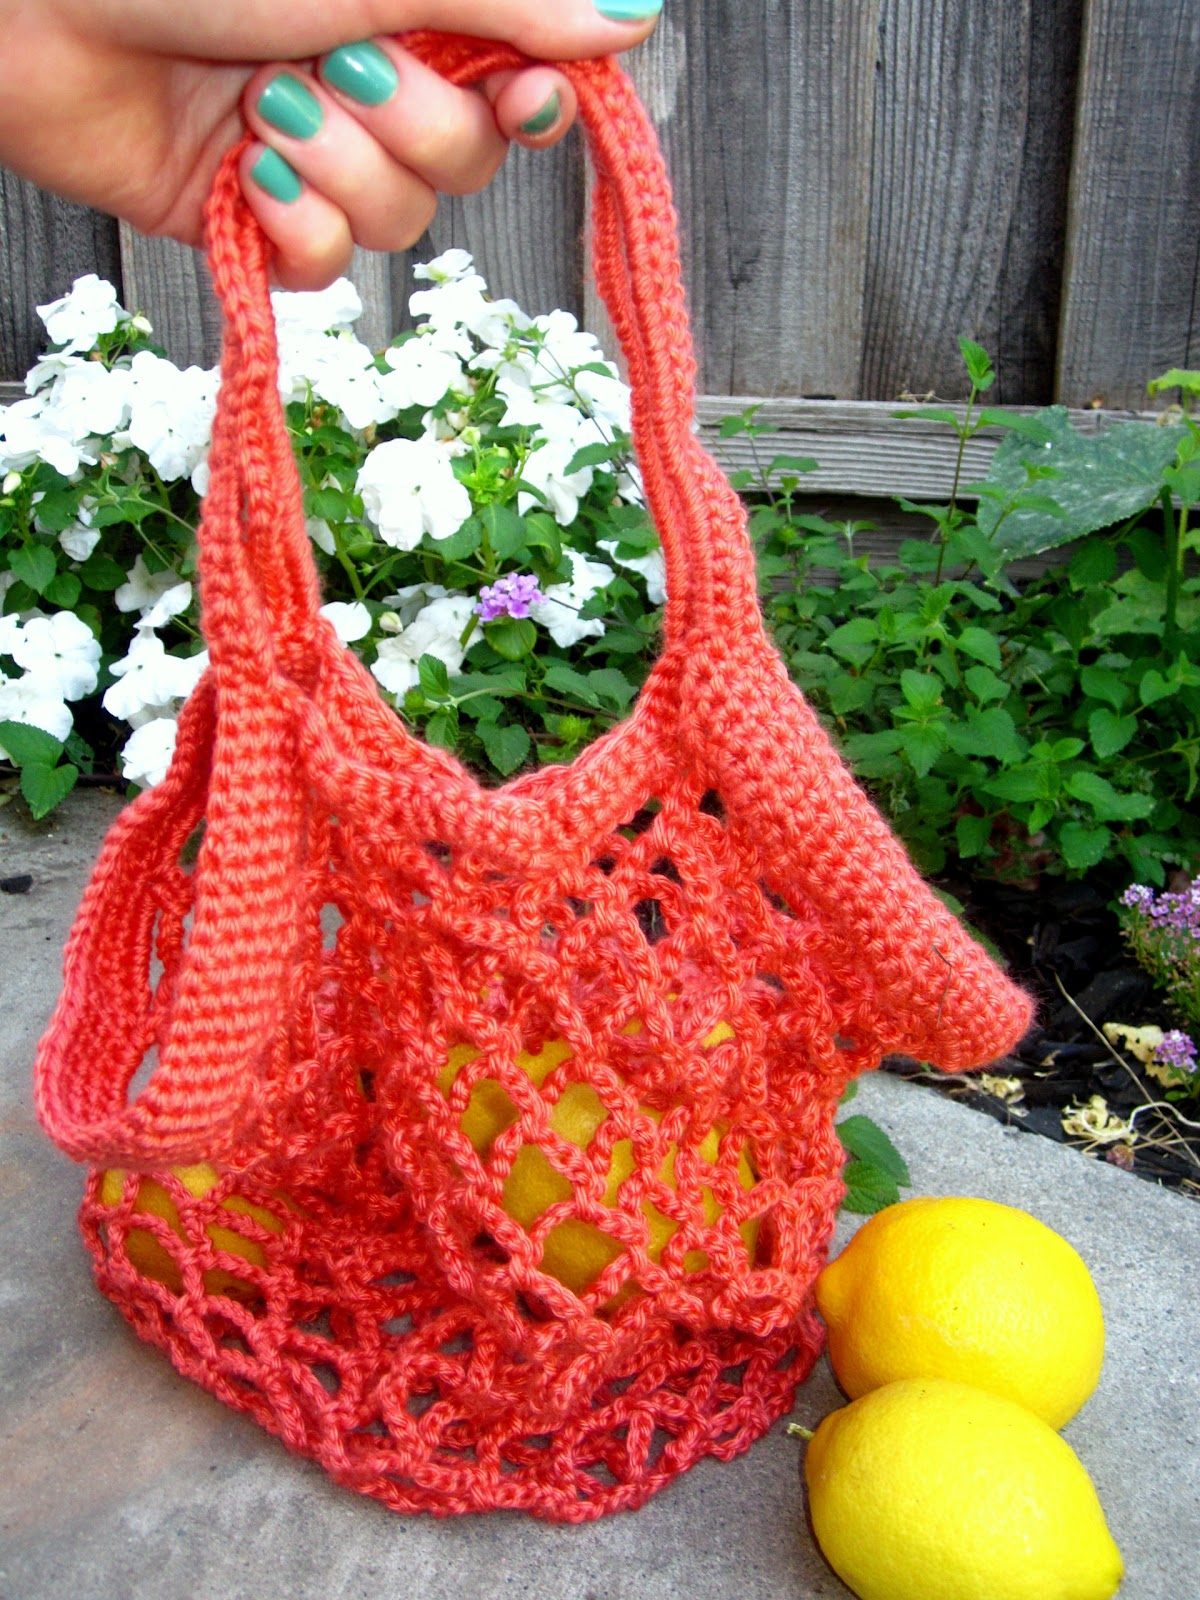 Easy Crochet Mesh Bag Pattern : More Fun With An Apron: Crochet Produce Bag